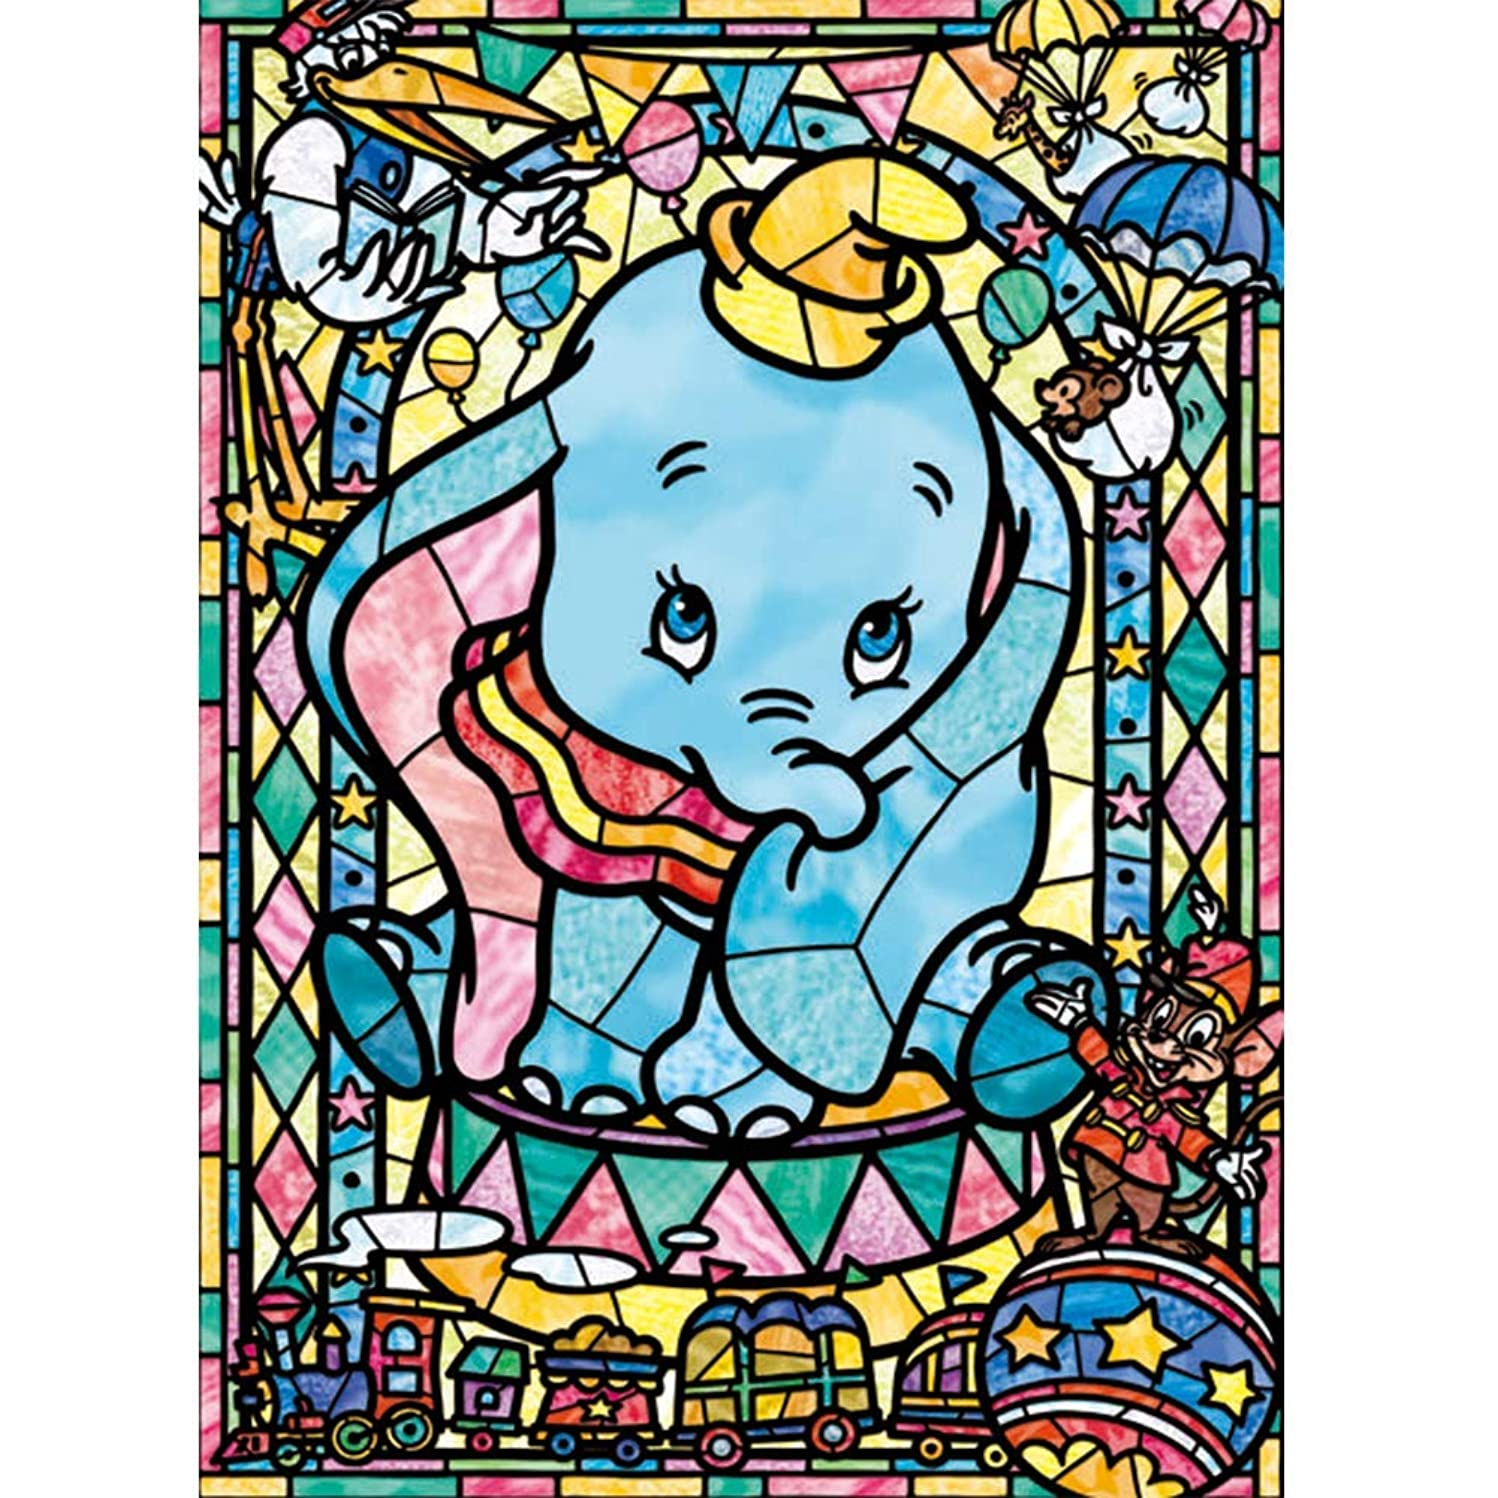 20x14Inch DIY 5D Diamond Paint by Numbers Kits Disney Dumbo The Flying Elephant DIY 5D Diamond Canvas Painting by Number Full Drill Crystal Rhinestone Diamond Embroidery Paint by Numbers Disney Jumbo